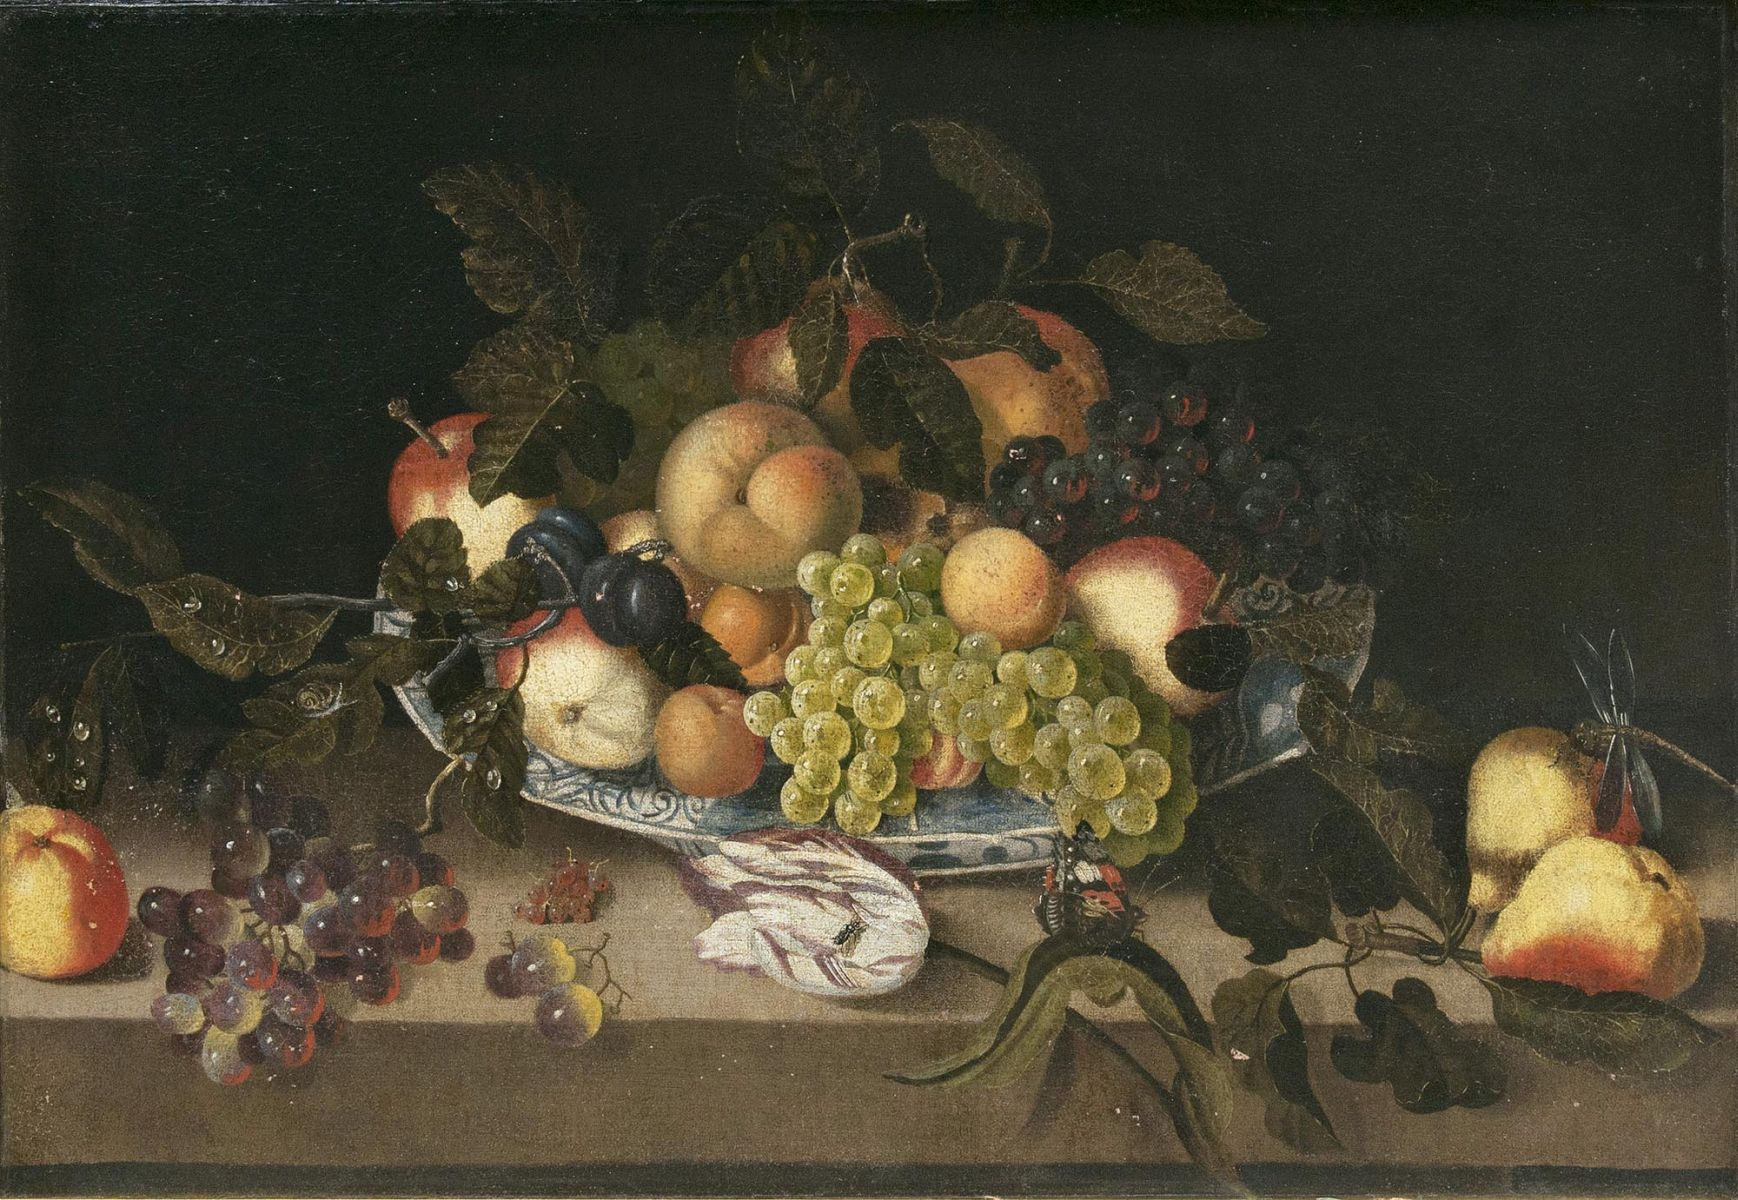 Table Still Life with Fruits, a Tulip and Insects